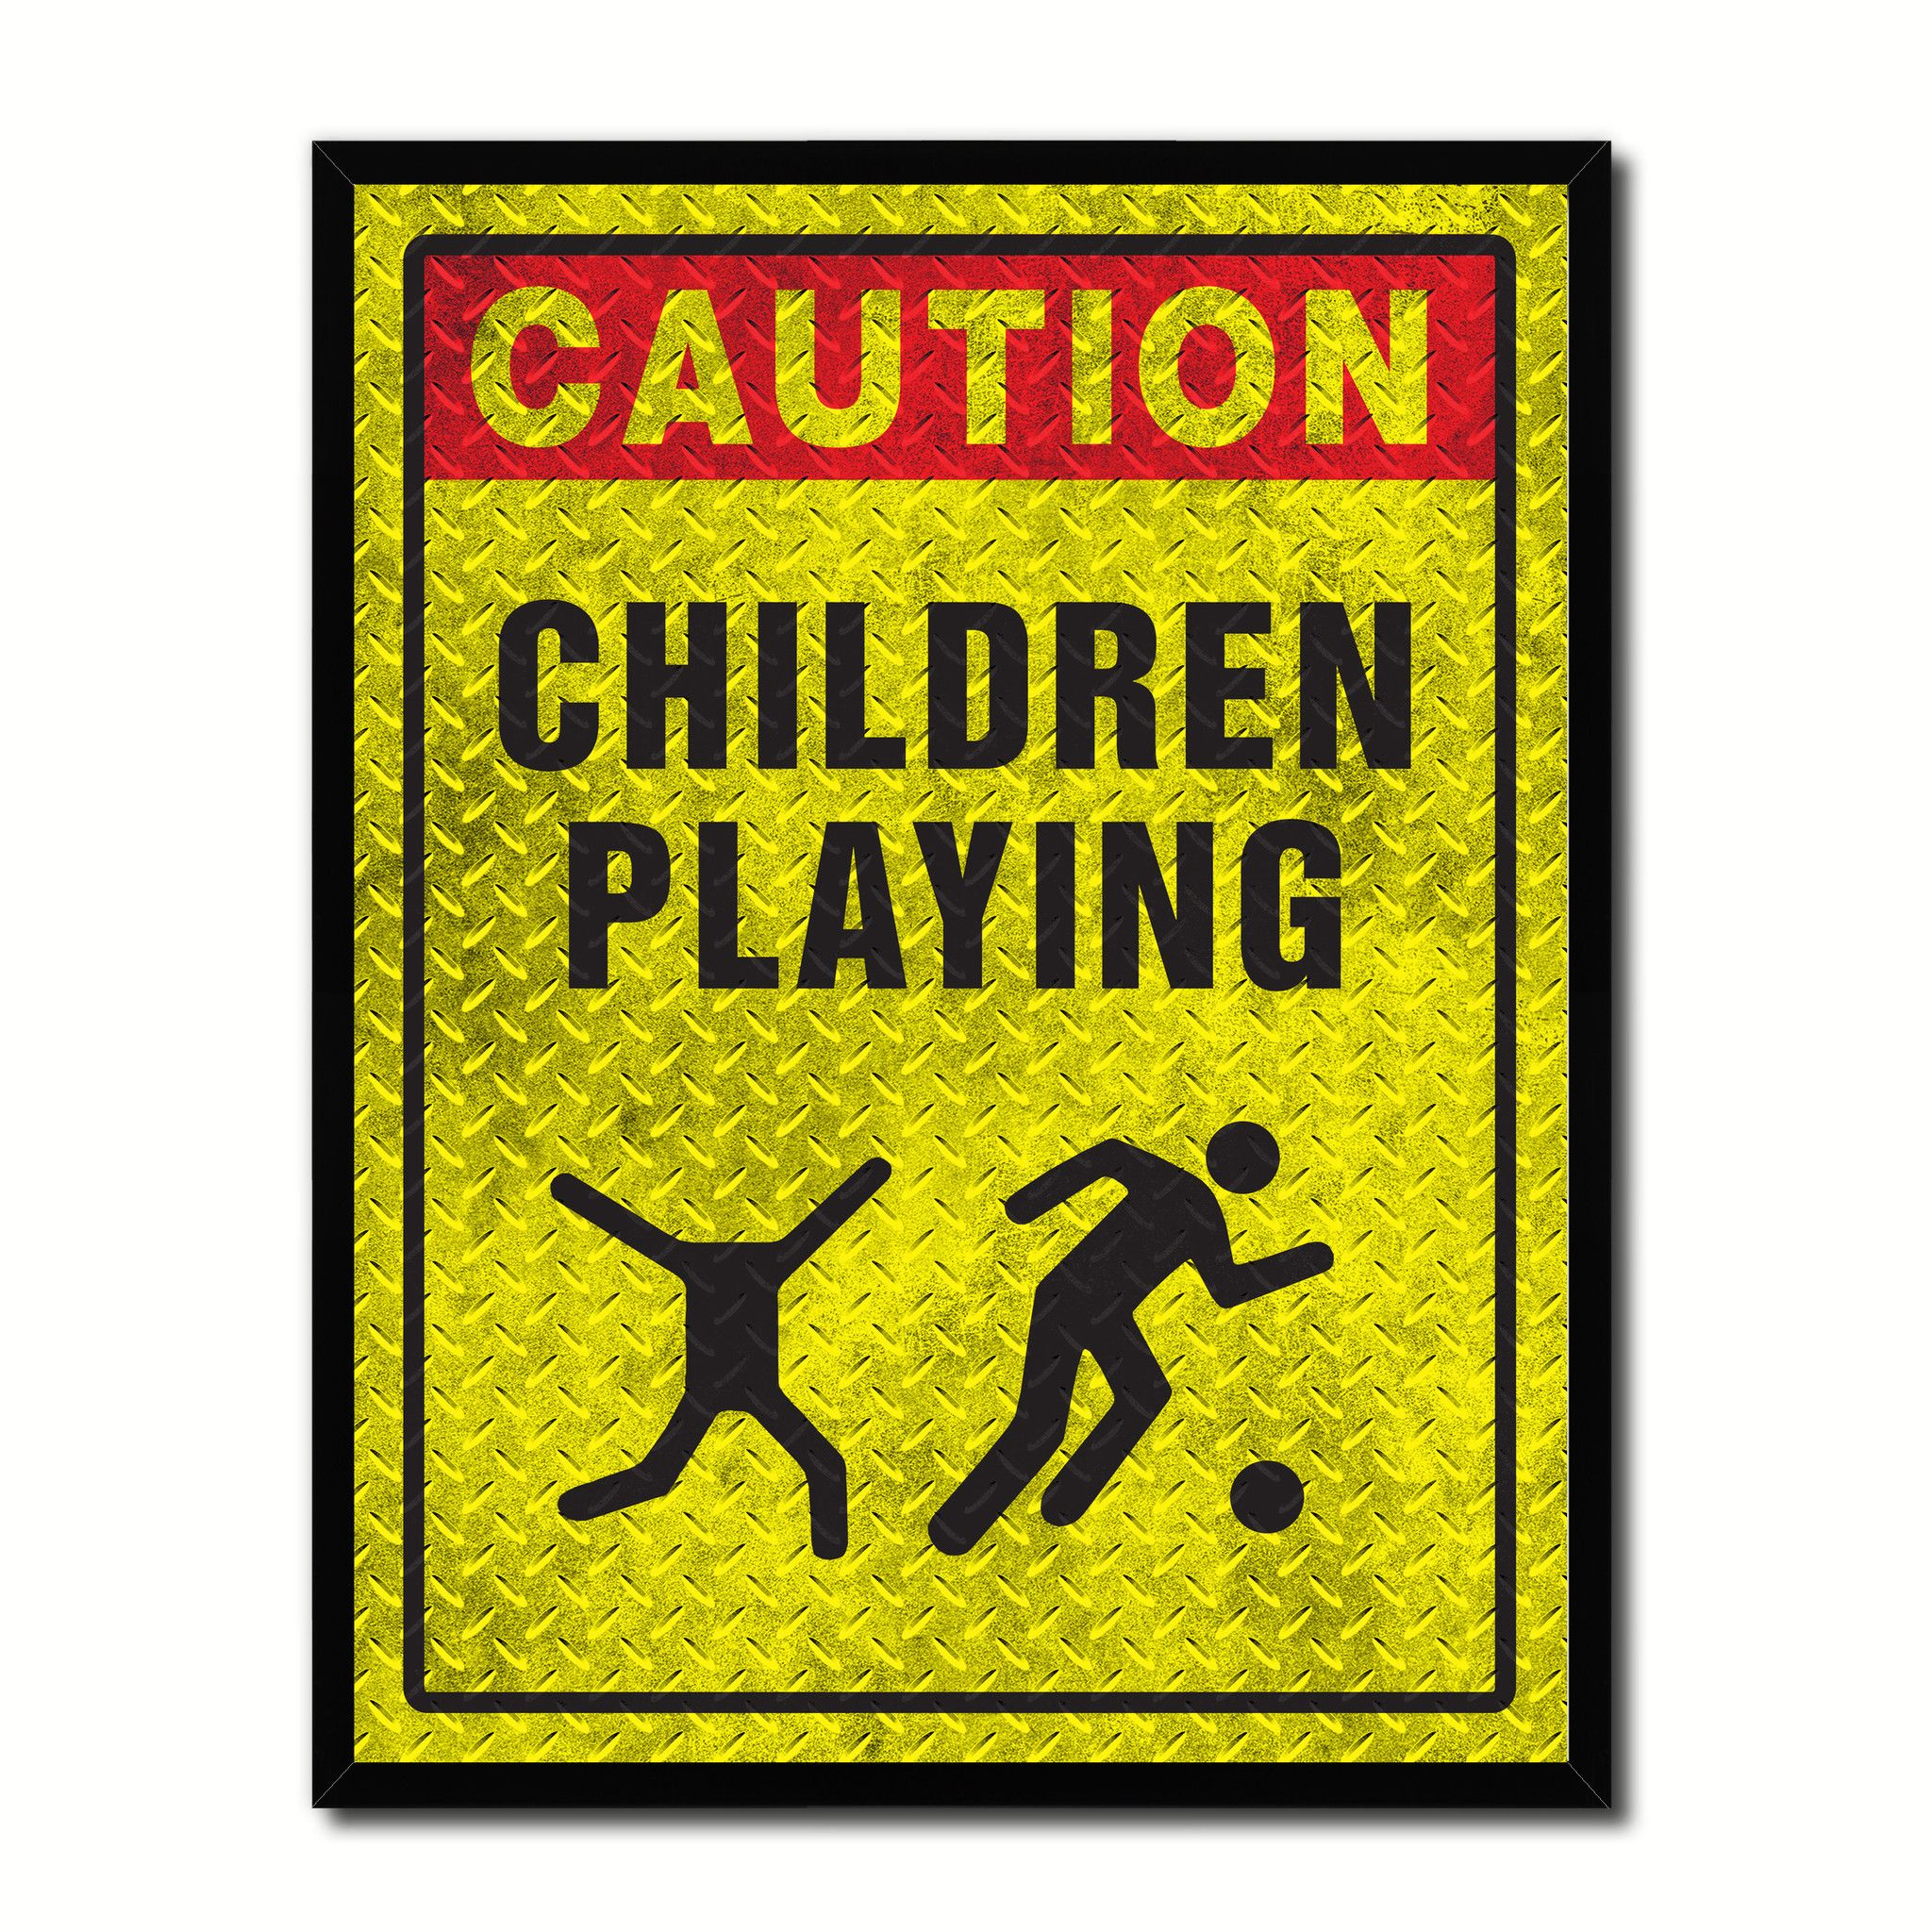 Caution Children Playing Caution Sign Gift Ideas Wall Art Home D?cor ...